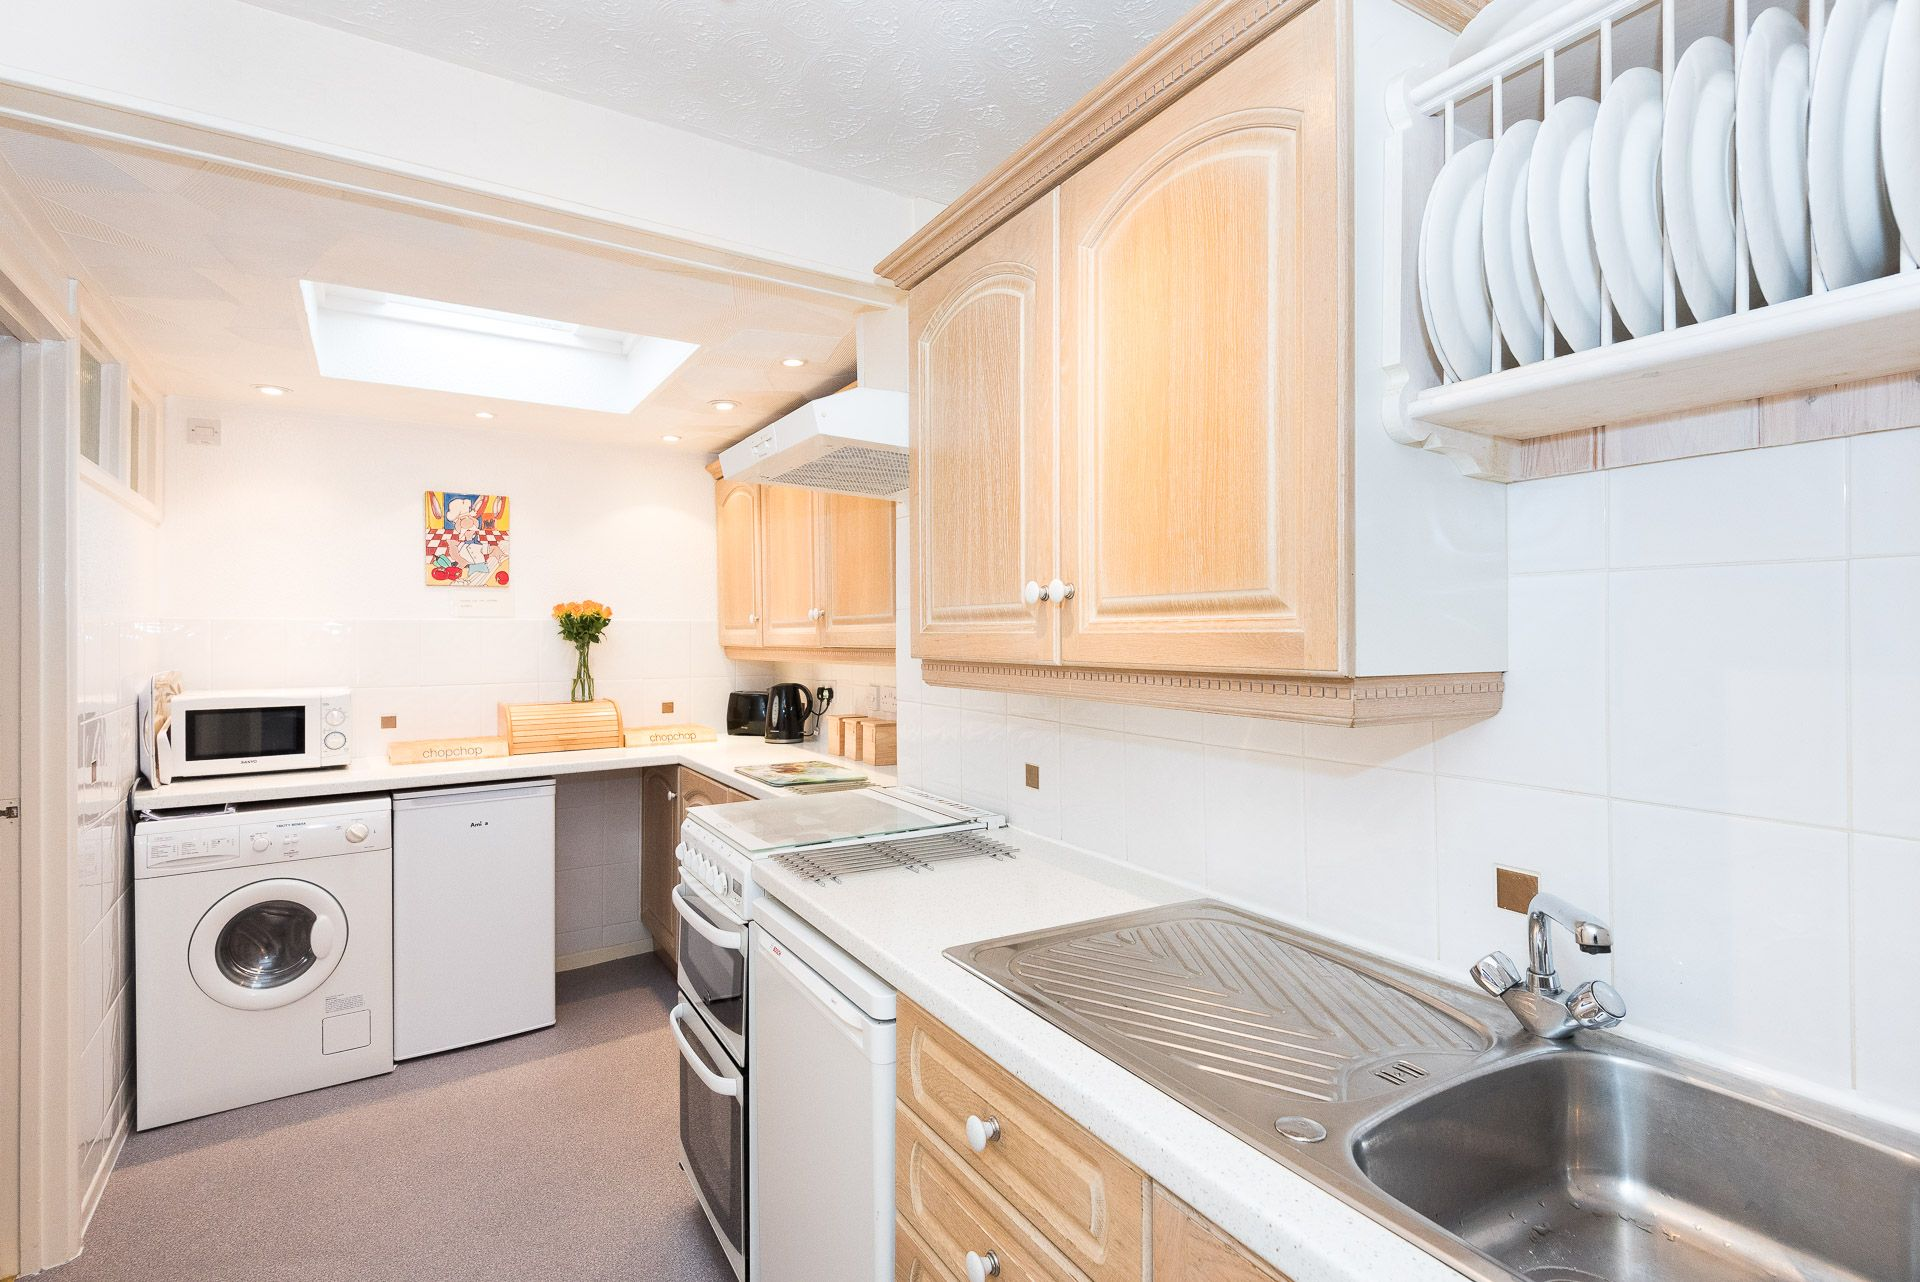 Quayview Apartment in Looe kitchen area